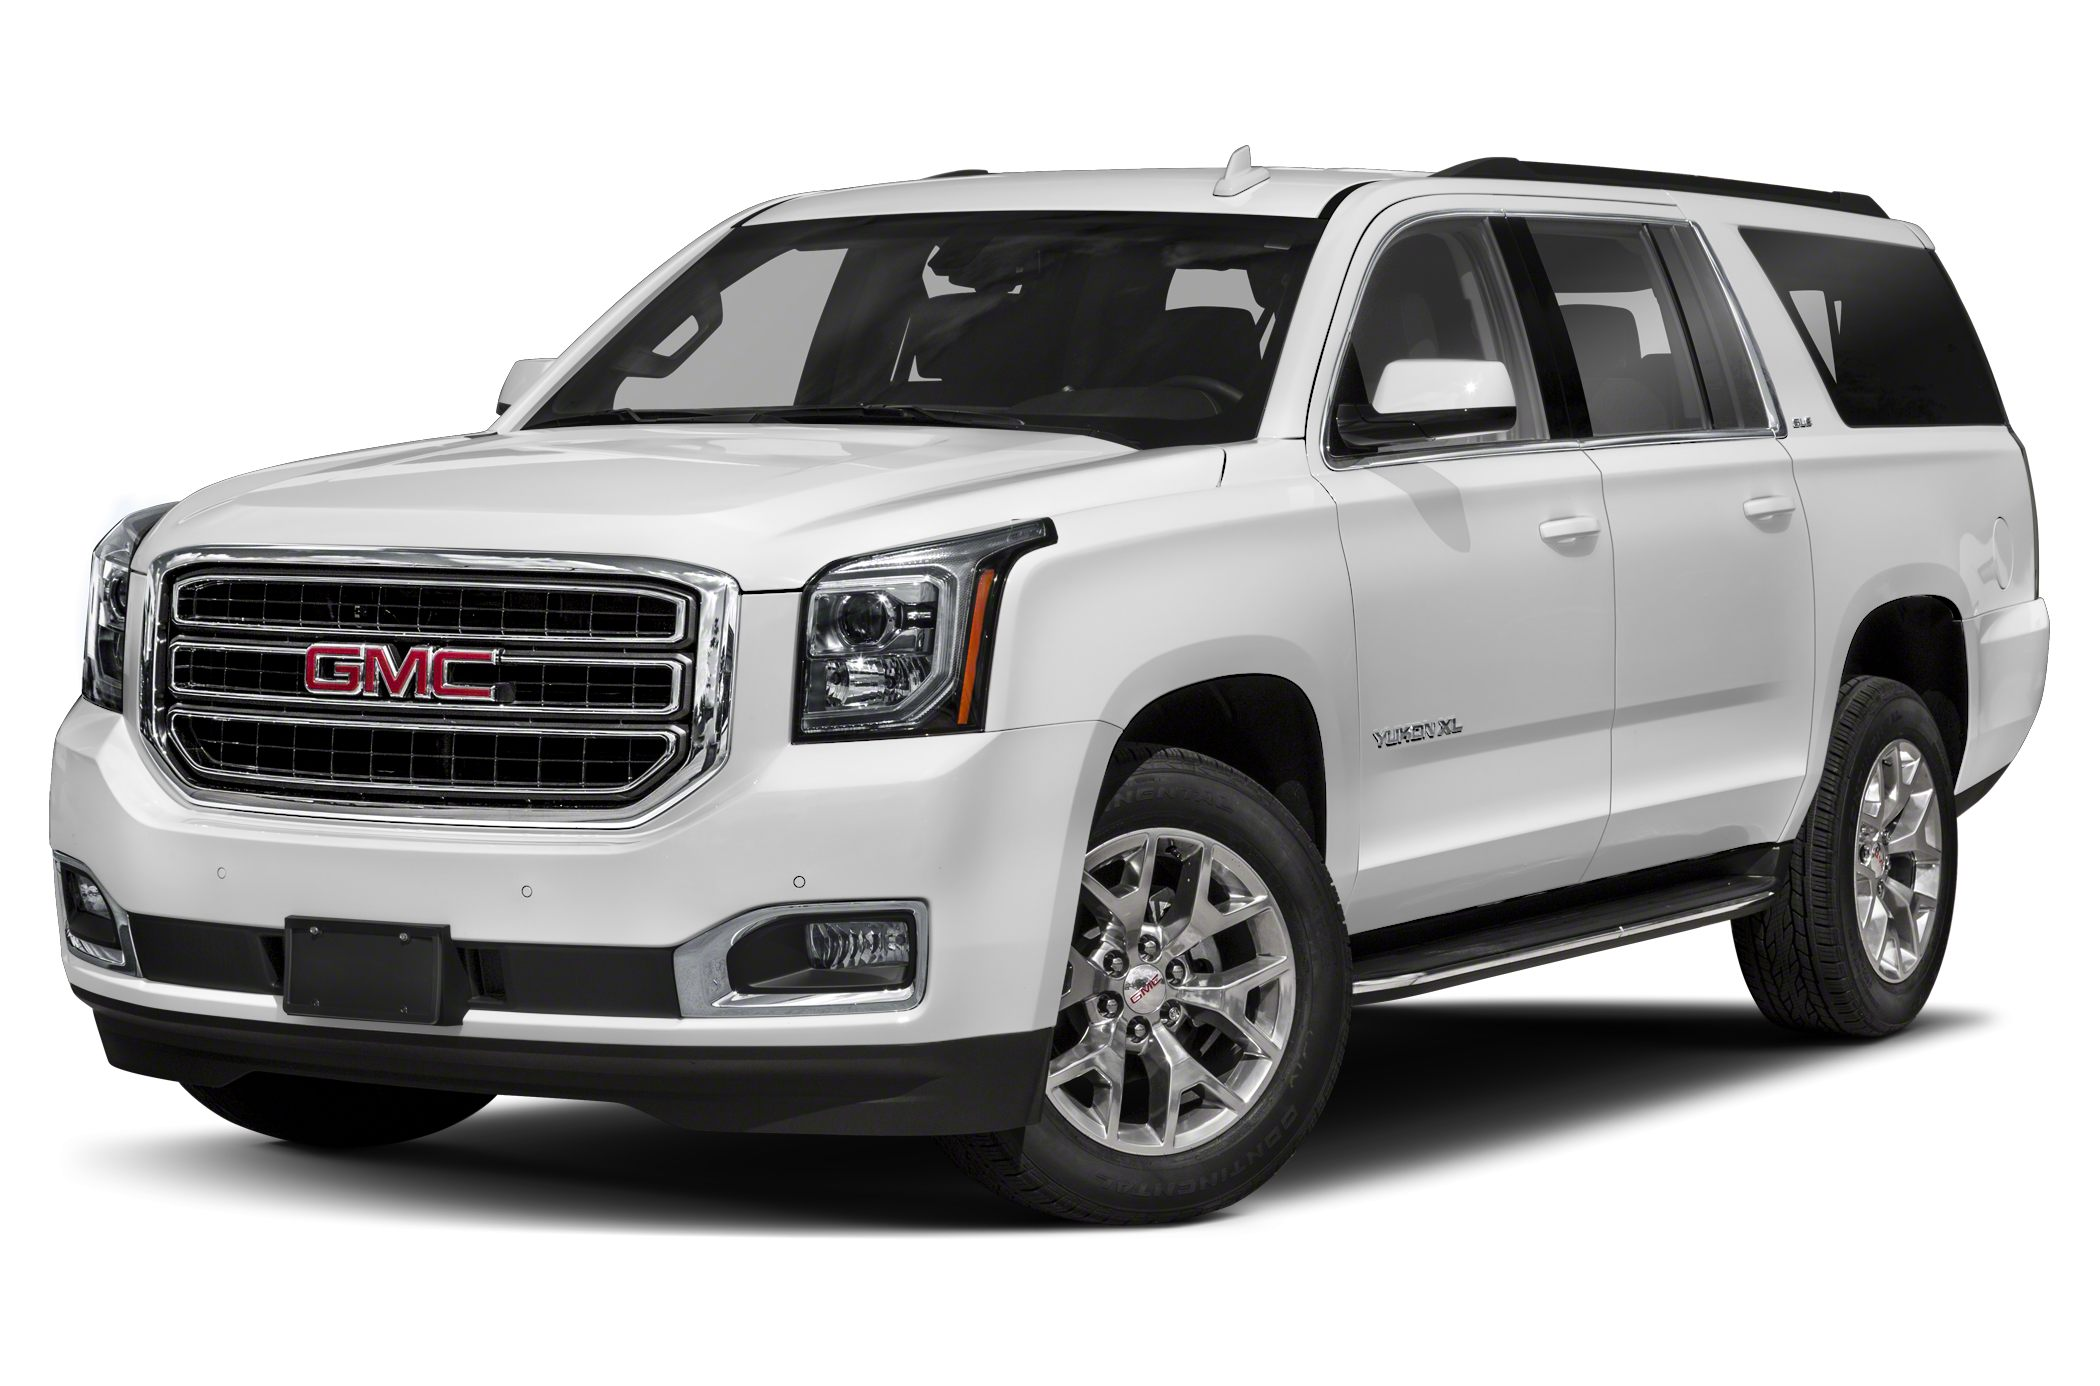 2018 Gmc Yukon Deals Prices Incentives Leases Overview Carsdirect